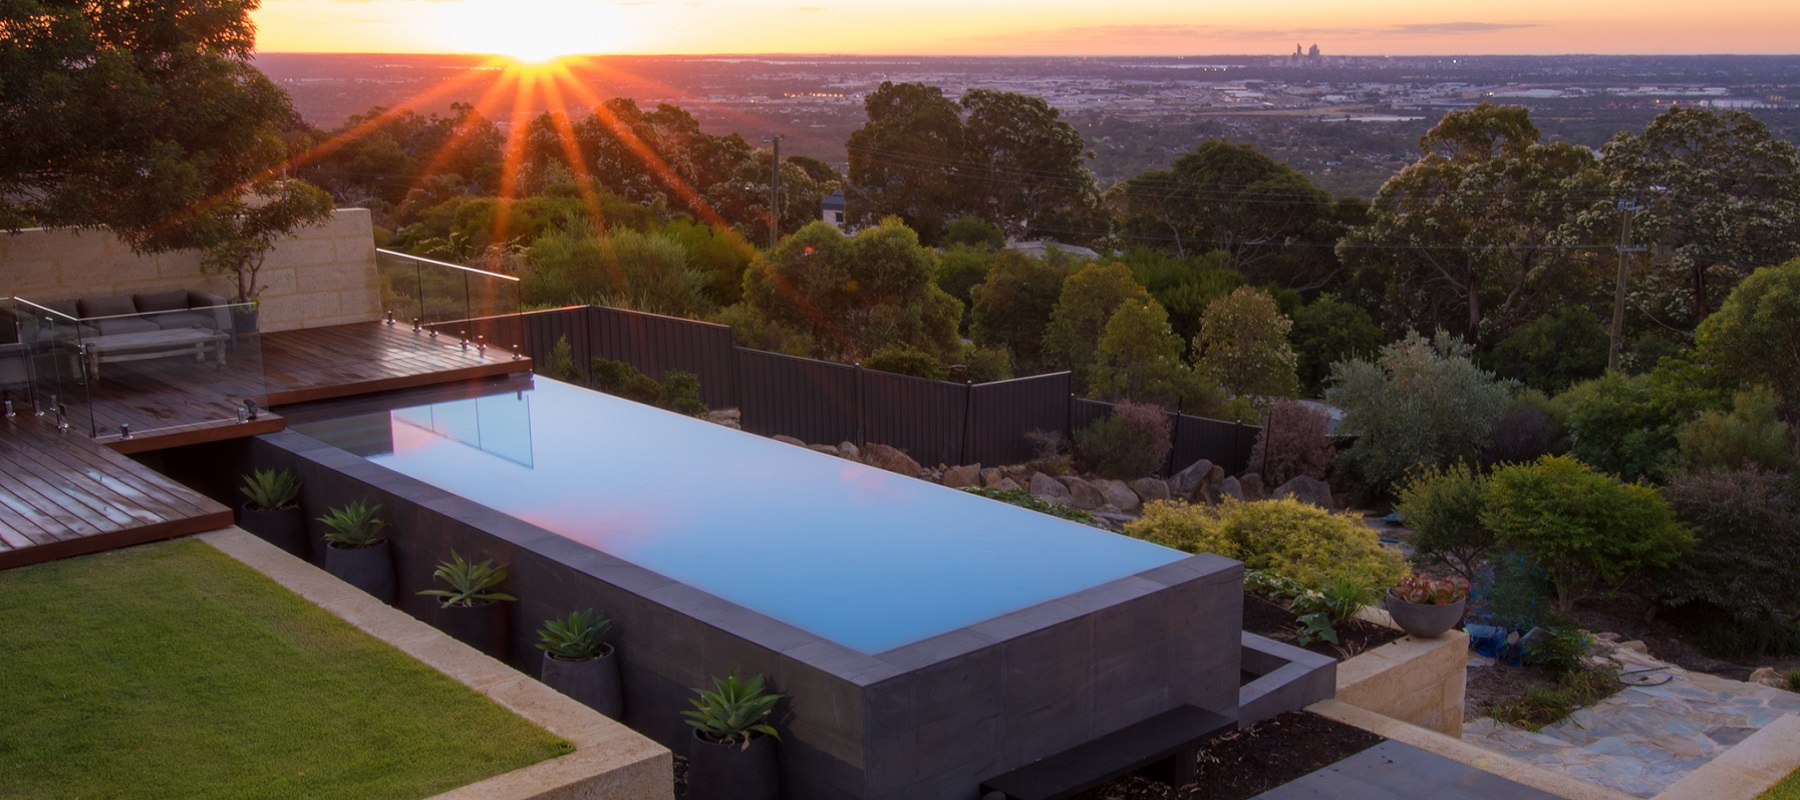 2015 spasa wa pool of the year pools by design for 50000 pool design